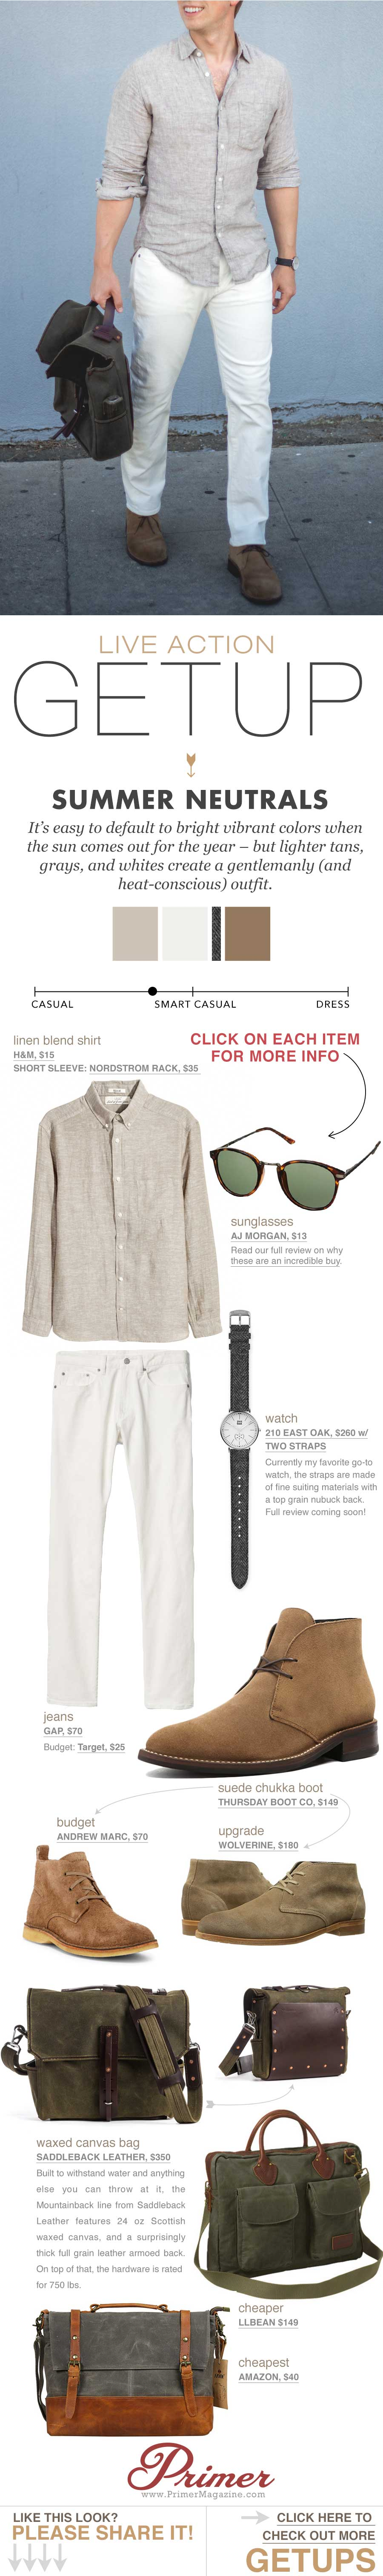 The Getup - mens fashion outfits ideas